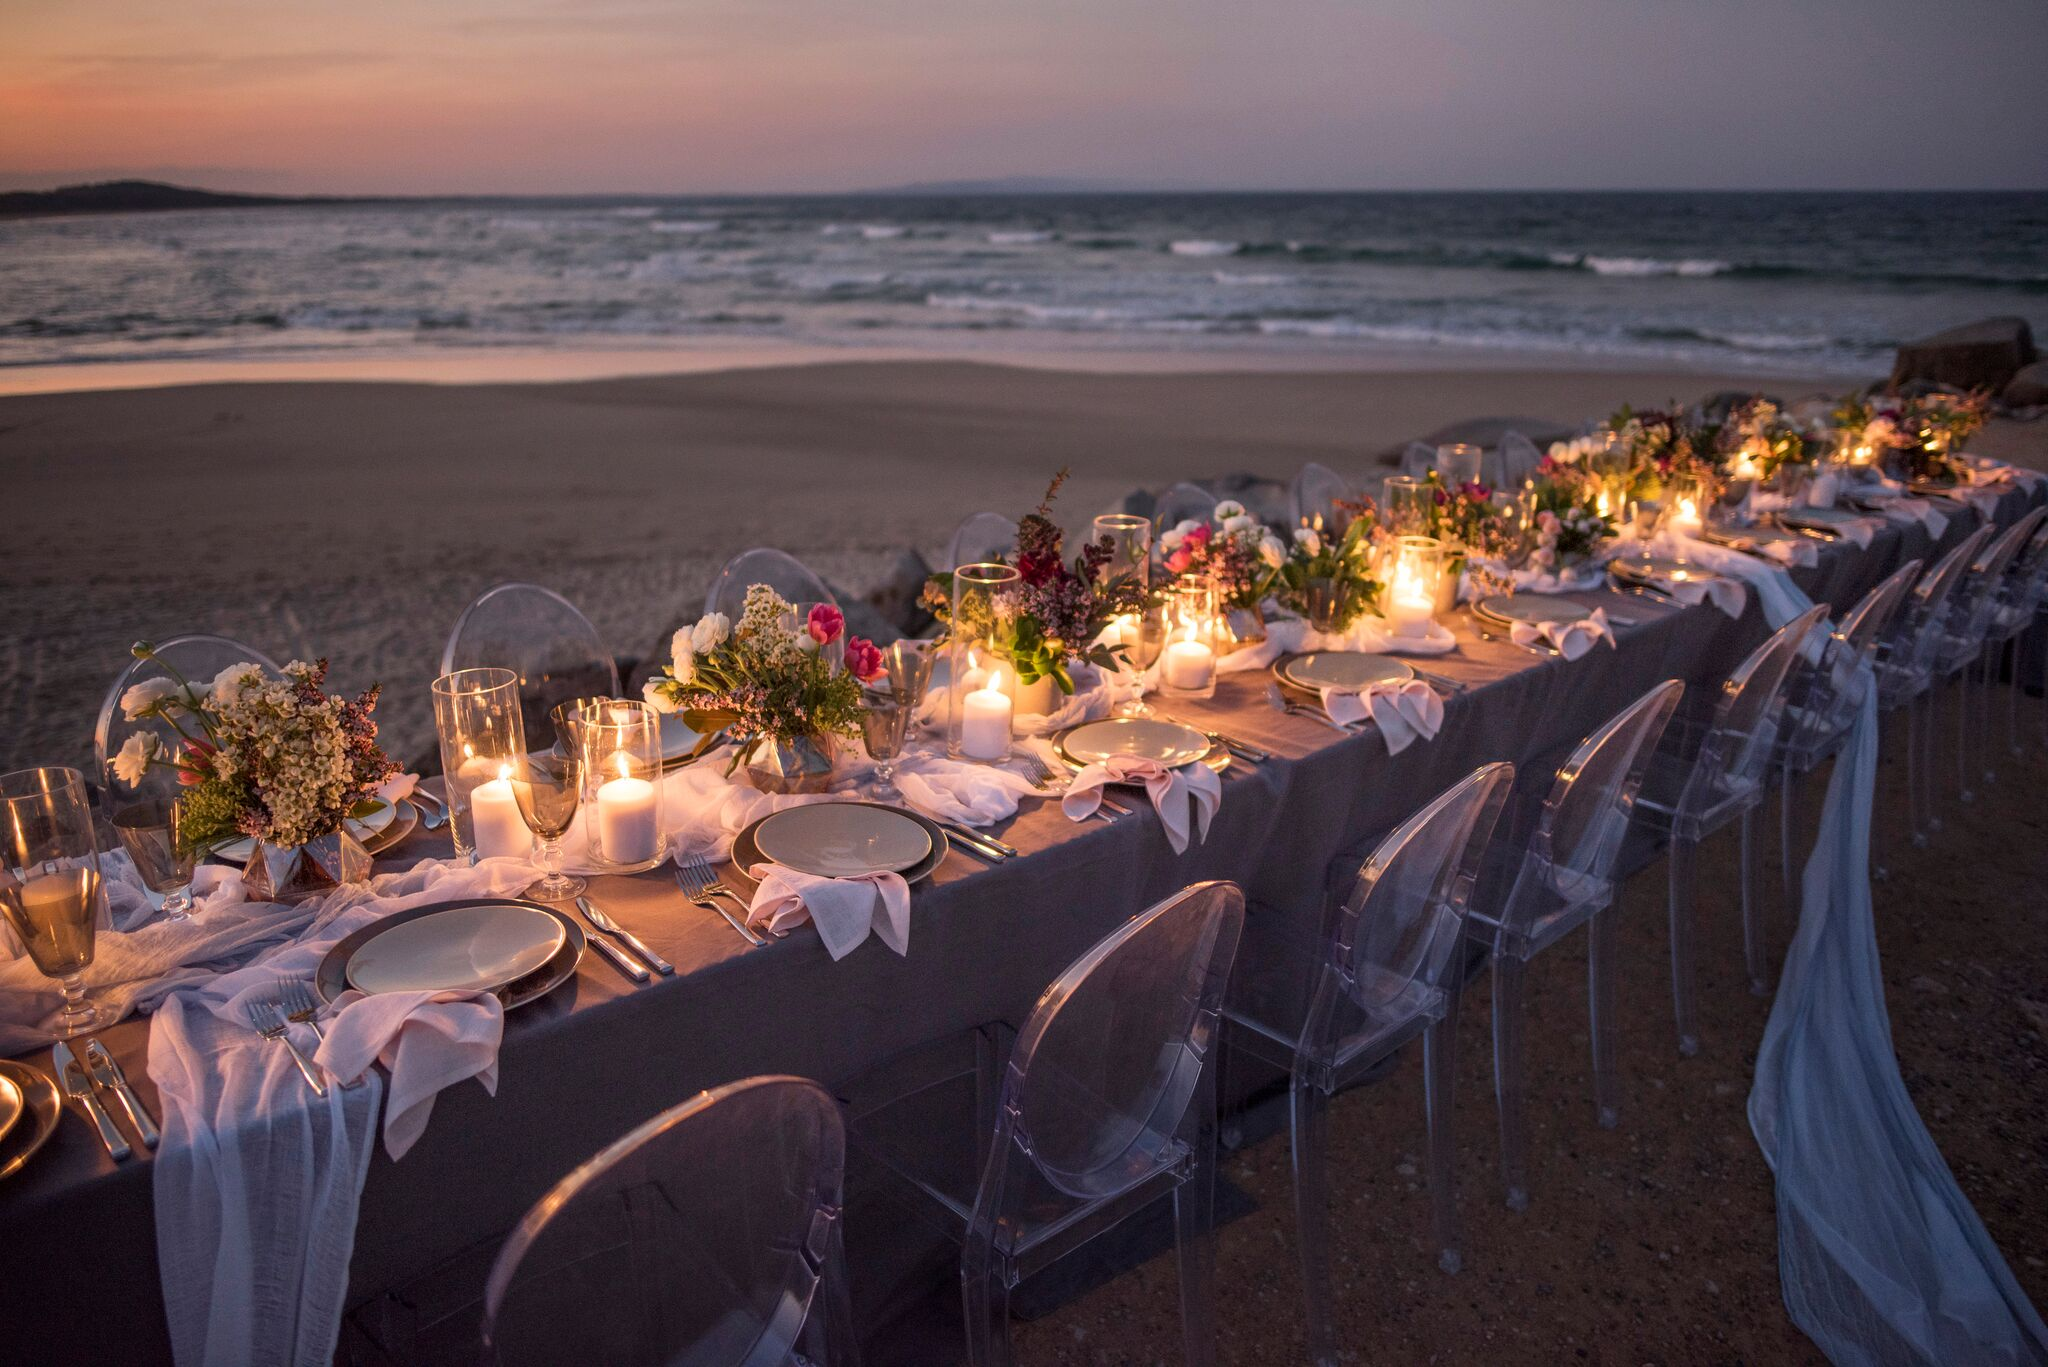 Lovebird Weddings - Lovebird Weddings collaborates with a wonderful array of fine-dining restaurants, award-winning wedding venues, and offers an exclusive list of private estates for those looking for the ultimate in personalised service.